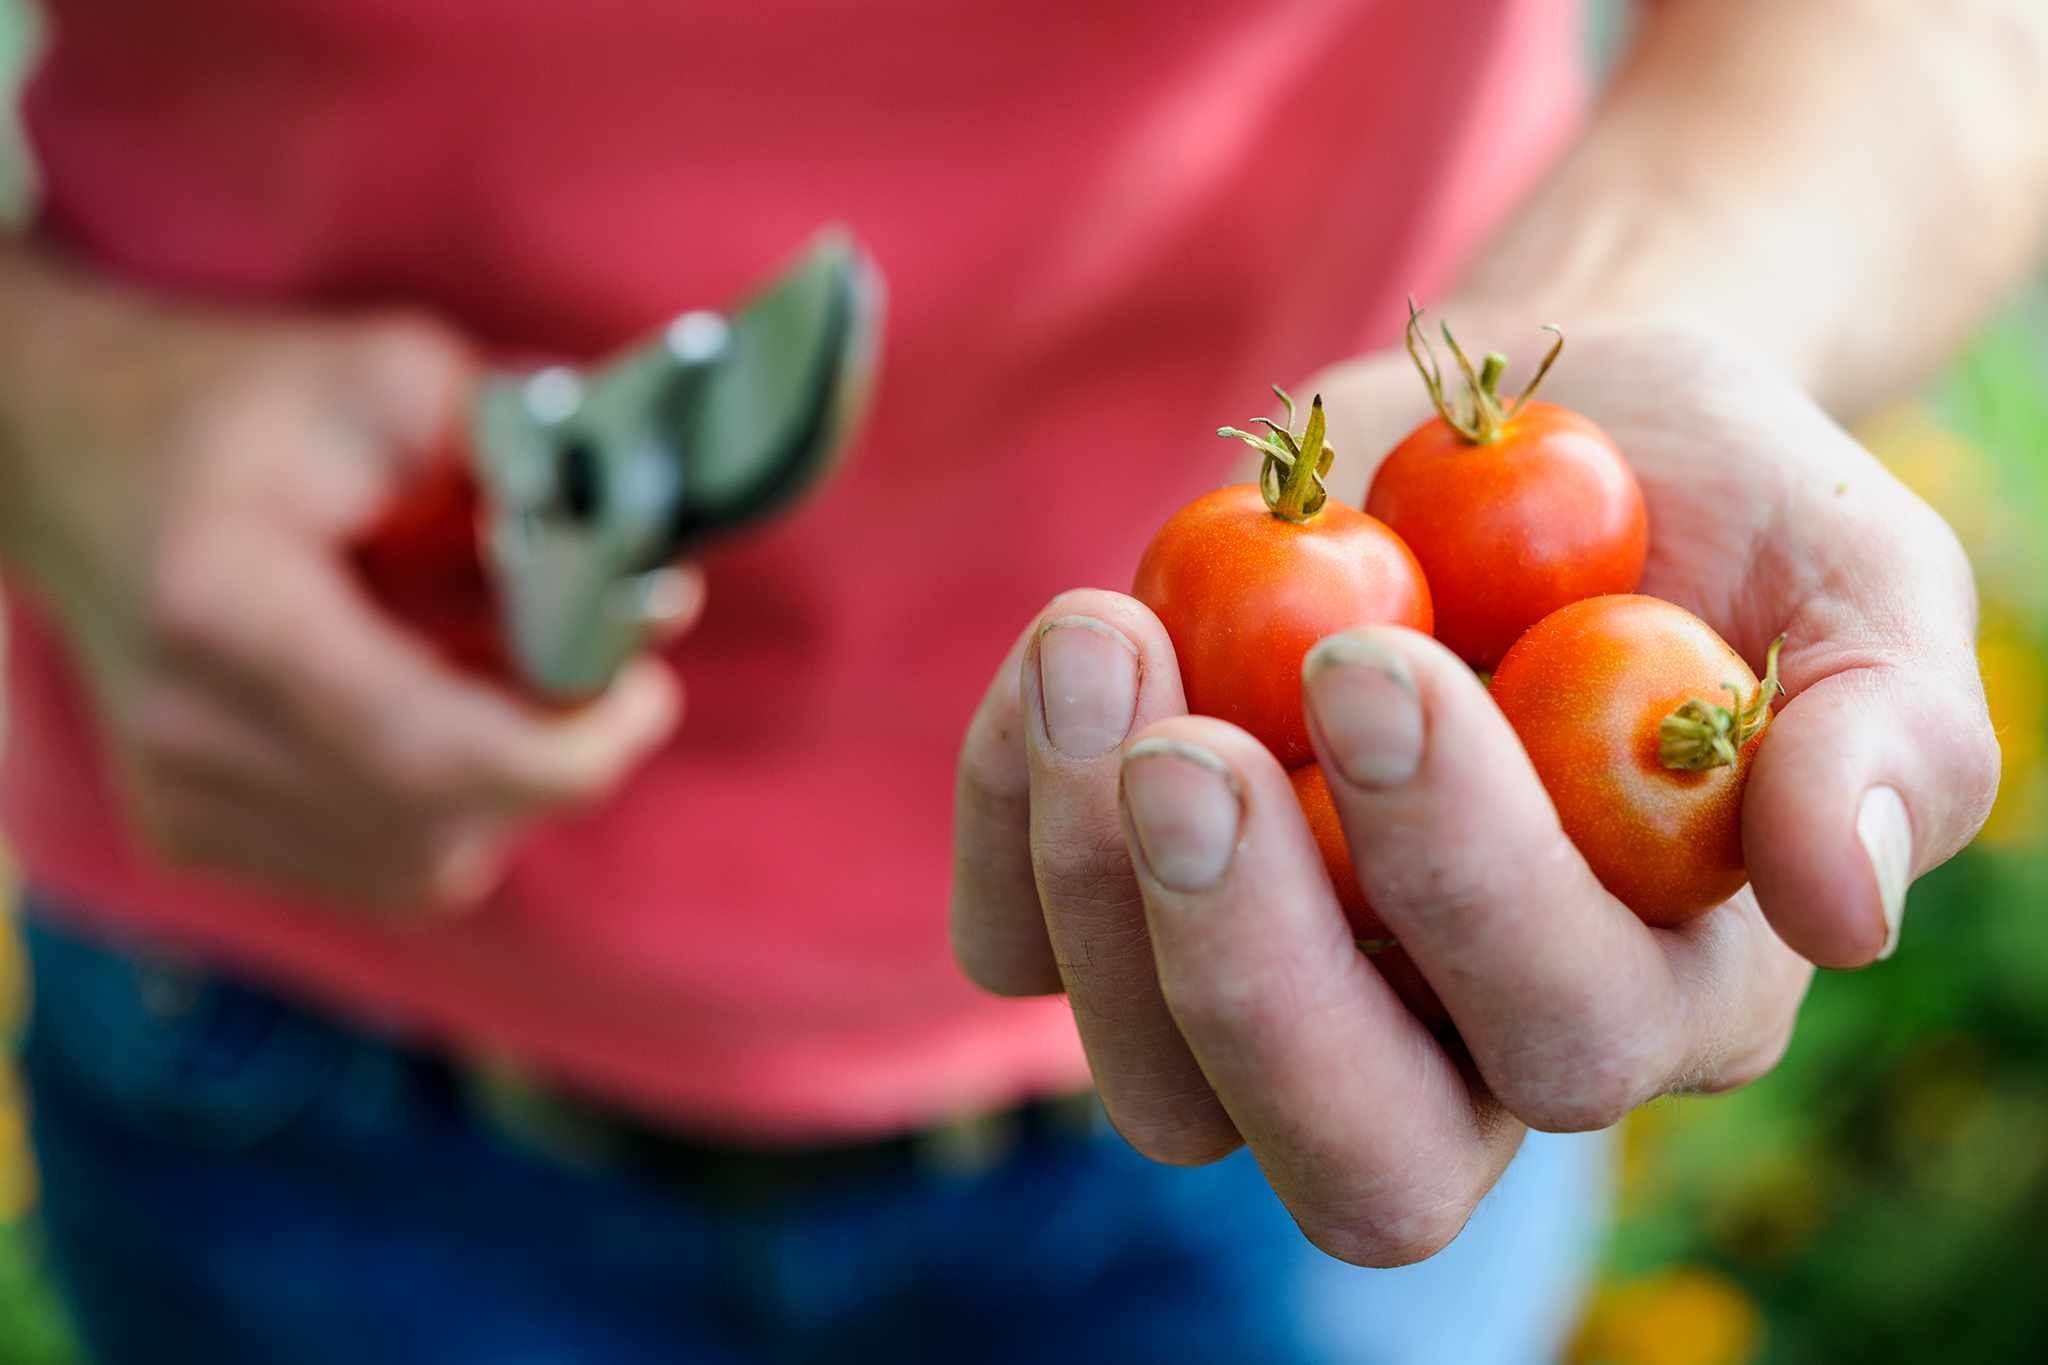 Picking the tomatoes